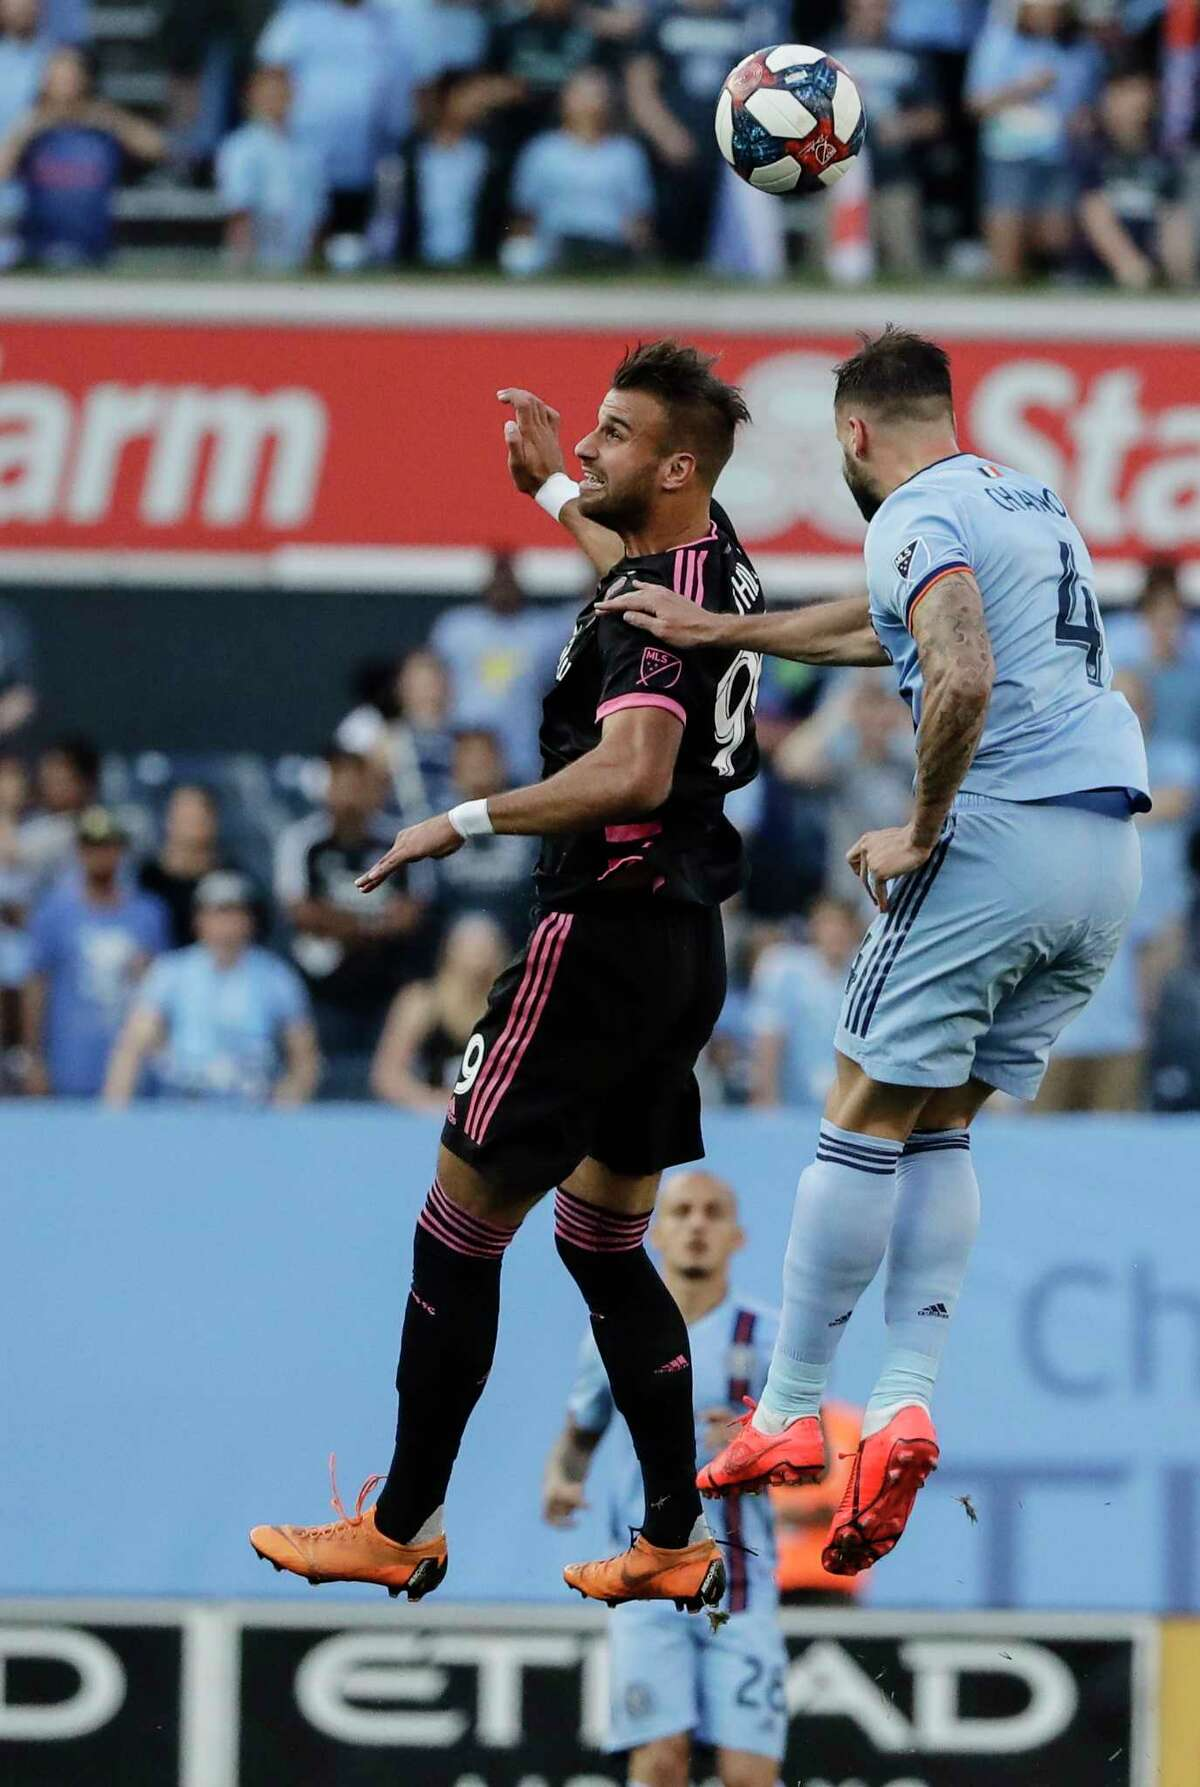 Seattle Sounders's Justin Dhillon, left, jump up to head the ball as New York City's Maxime Chanot defends during the first half of an MLS soccer match Wednesday, July 3, 2019, in New York. (AP Photo/Frank Franklin II)